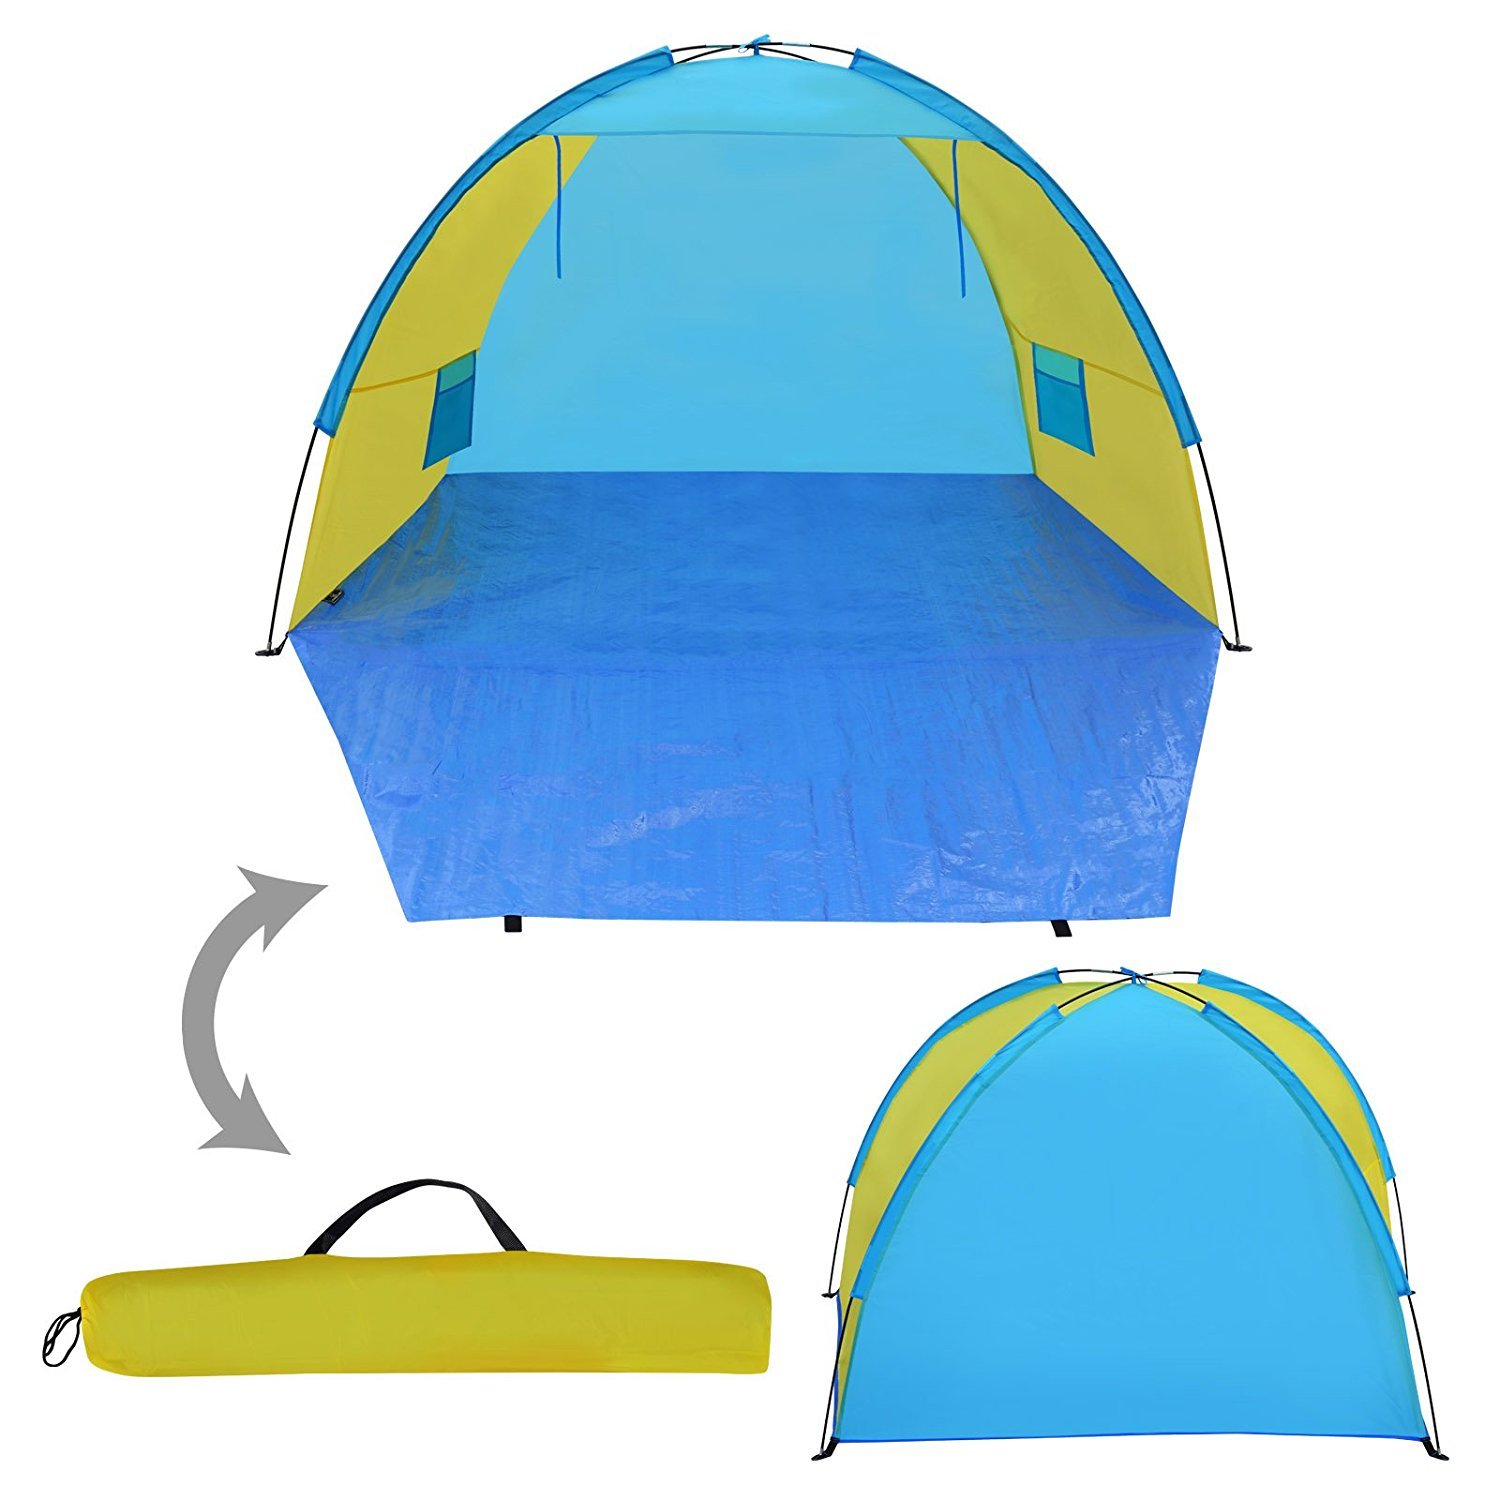 Strong Camel Portable Pop Up Beach Shelter, Camping Tent, Sunshade Outdoor Canopy, Light Blue and Yellow, W/Carry Bag